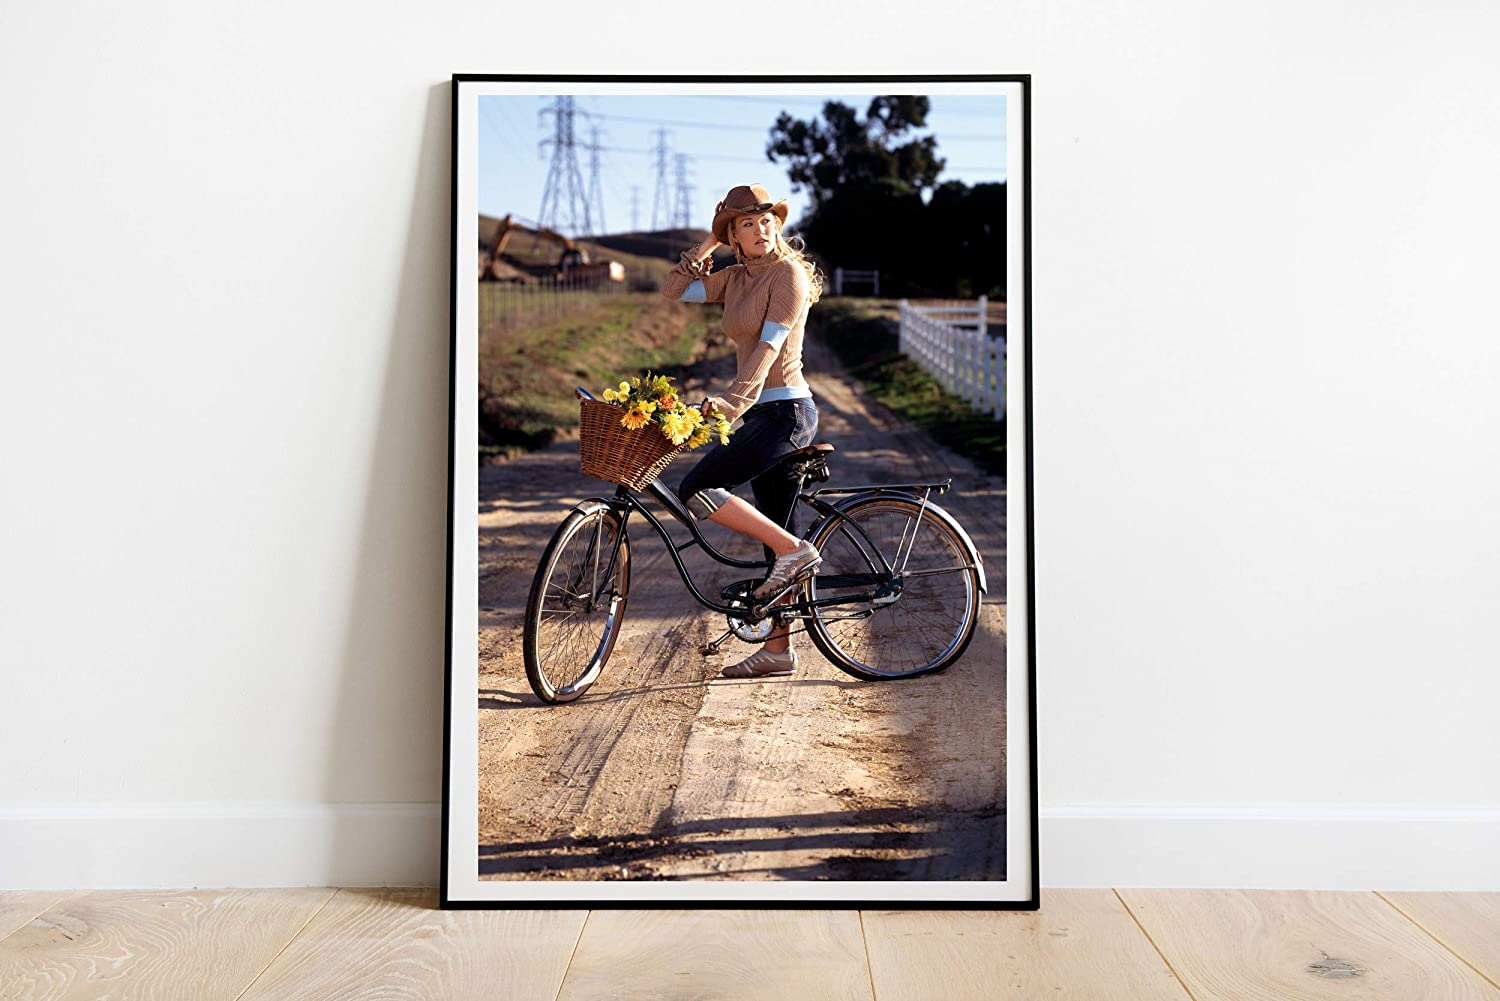 """Country Weekly Photoshoot Carrie Underwood Poster Wall Decor Art Wall Art Print Gift Poster Unframed Poster Print Canvas Printing Size - 11""""x17"""" 18""""x24"""" 24""""x32"""" 24""""x36"""" (A4-8.5""""x11"""" (21x29,7cm))"""